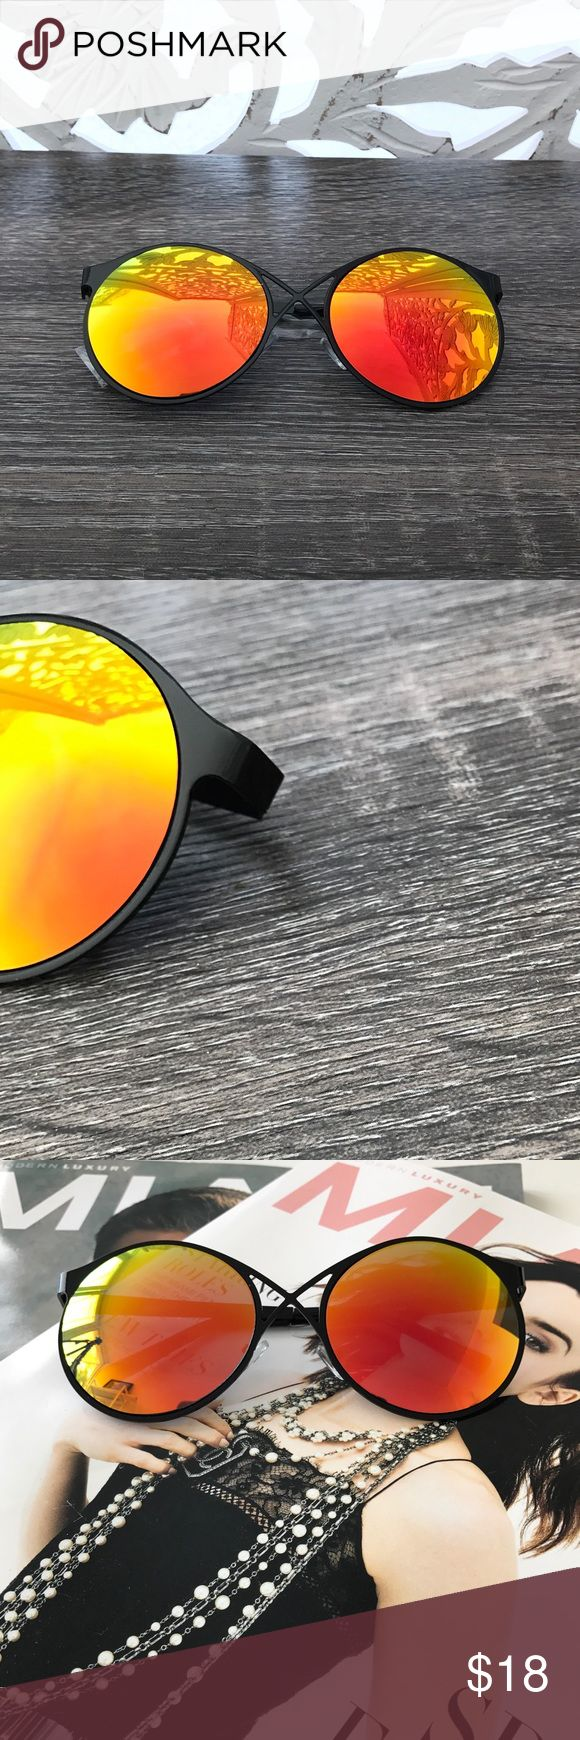 ▫️SALE▫️ORANGE MIRROR LENS ROUND SUNGLASSES * Round Lens * Front cross detail  * Orange Mirror Lens * Black metal frame  * Approximate measurements: Full length 6in; Individual lens 2.5in H x 2.5in W * PRICE FIRM Style Link Miami Accessories Sunglasses